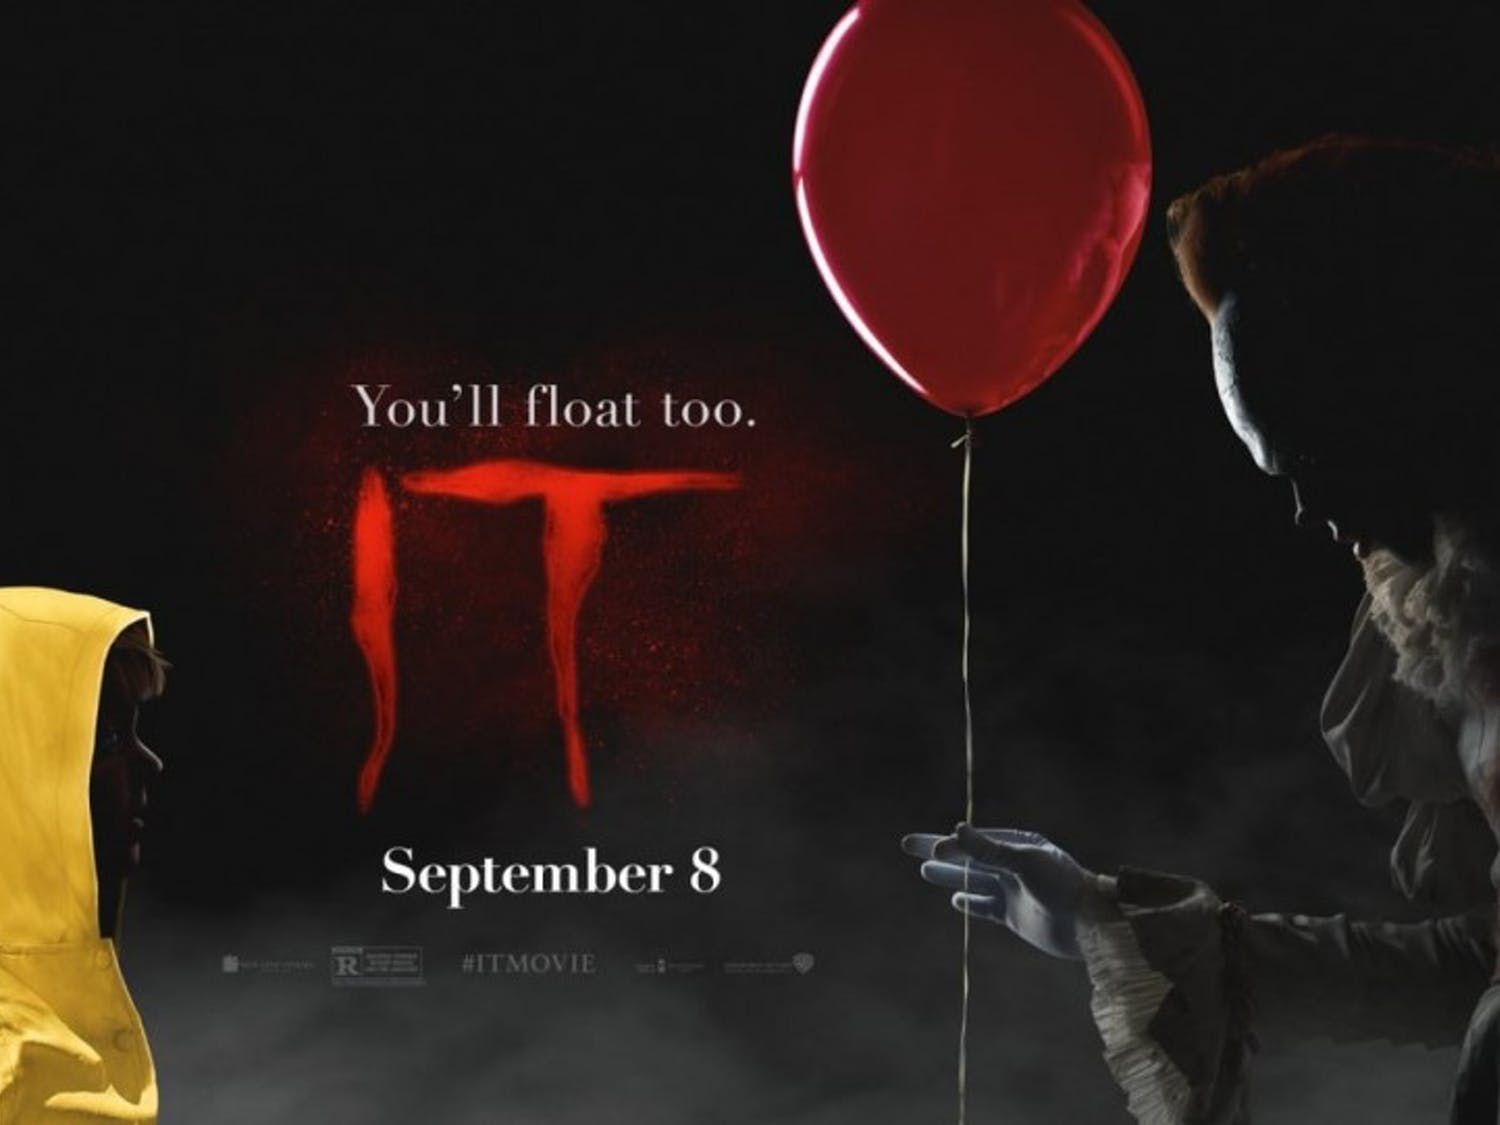 The horror film kicked off the month of September on a high note, defying box office expectations.